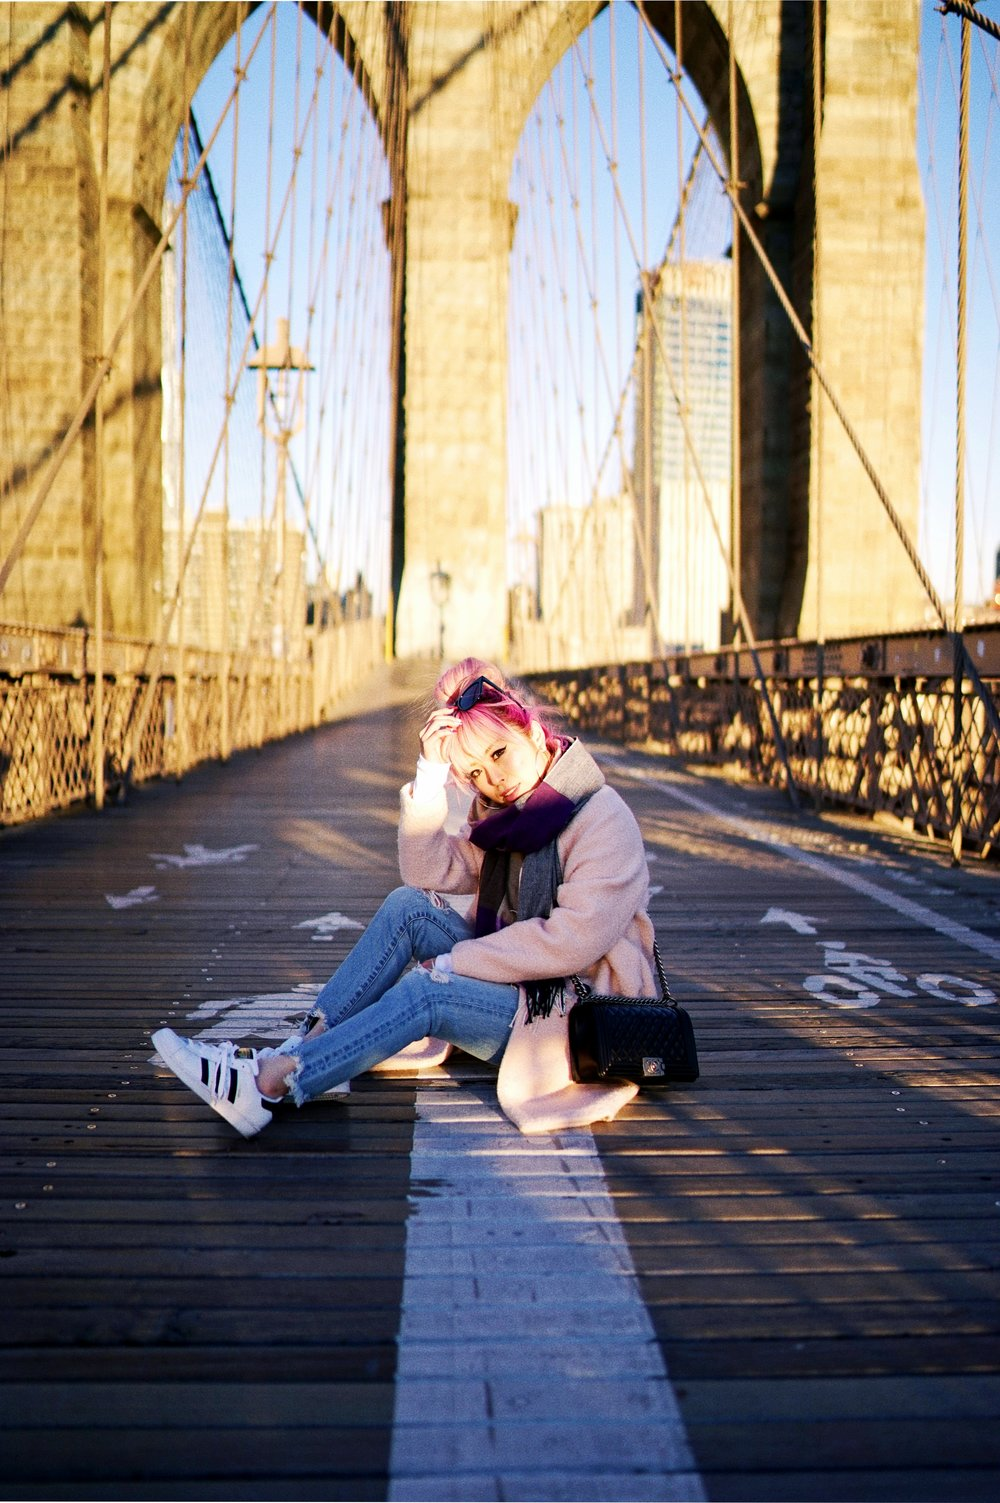 GAP Scarf-Zara pink coat-MOUSSY- frayed hem jeans- CHANEL Lambskin Quilted Medium Boy Flap Black-Adidas Superstar Shoes-Urban Outfitters Sunglasses-Aika's Love Closet-Sealtle fashion style blogger from japan-pink hair-brooklyn bridge-new york-city 3